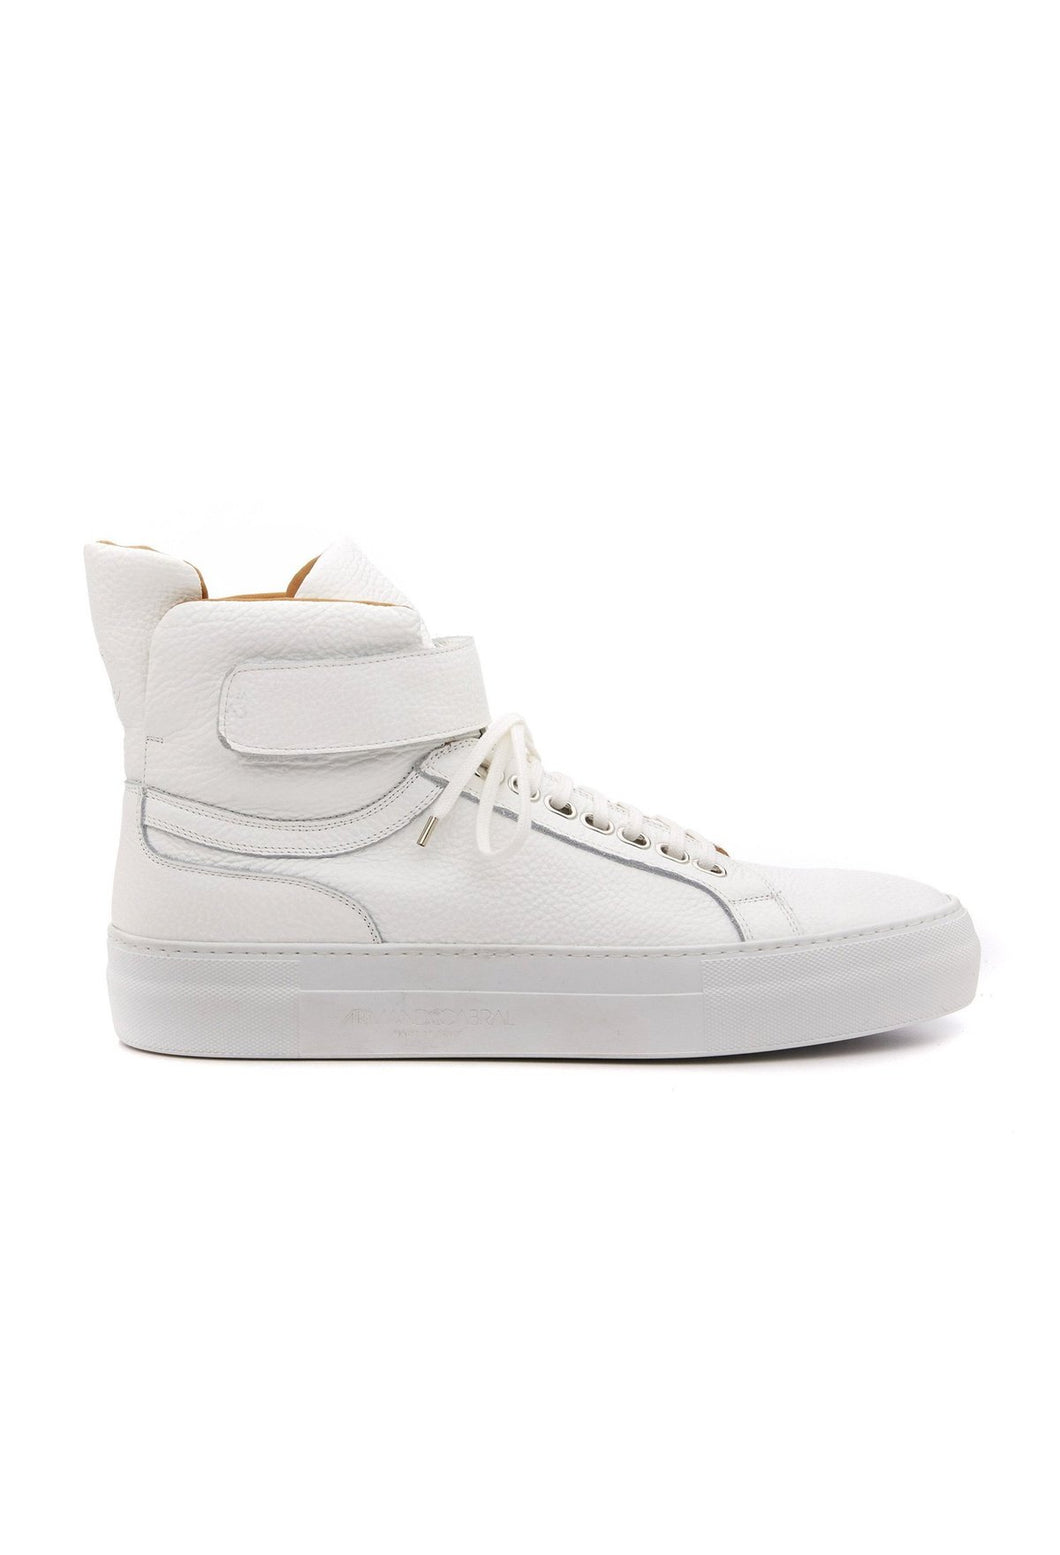 ARMANDO CABRAL Broome High Top Trainer - WHITE / ANTHRACITE